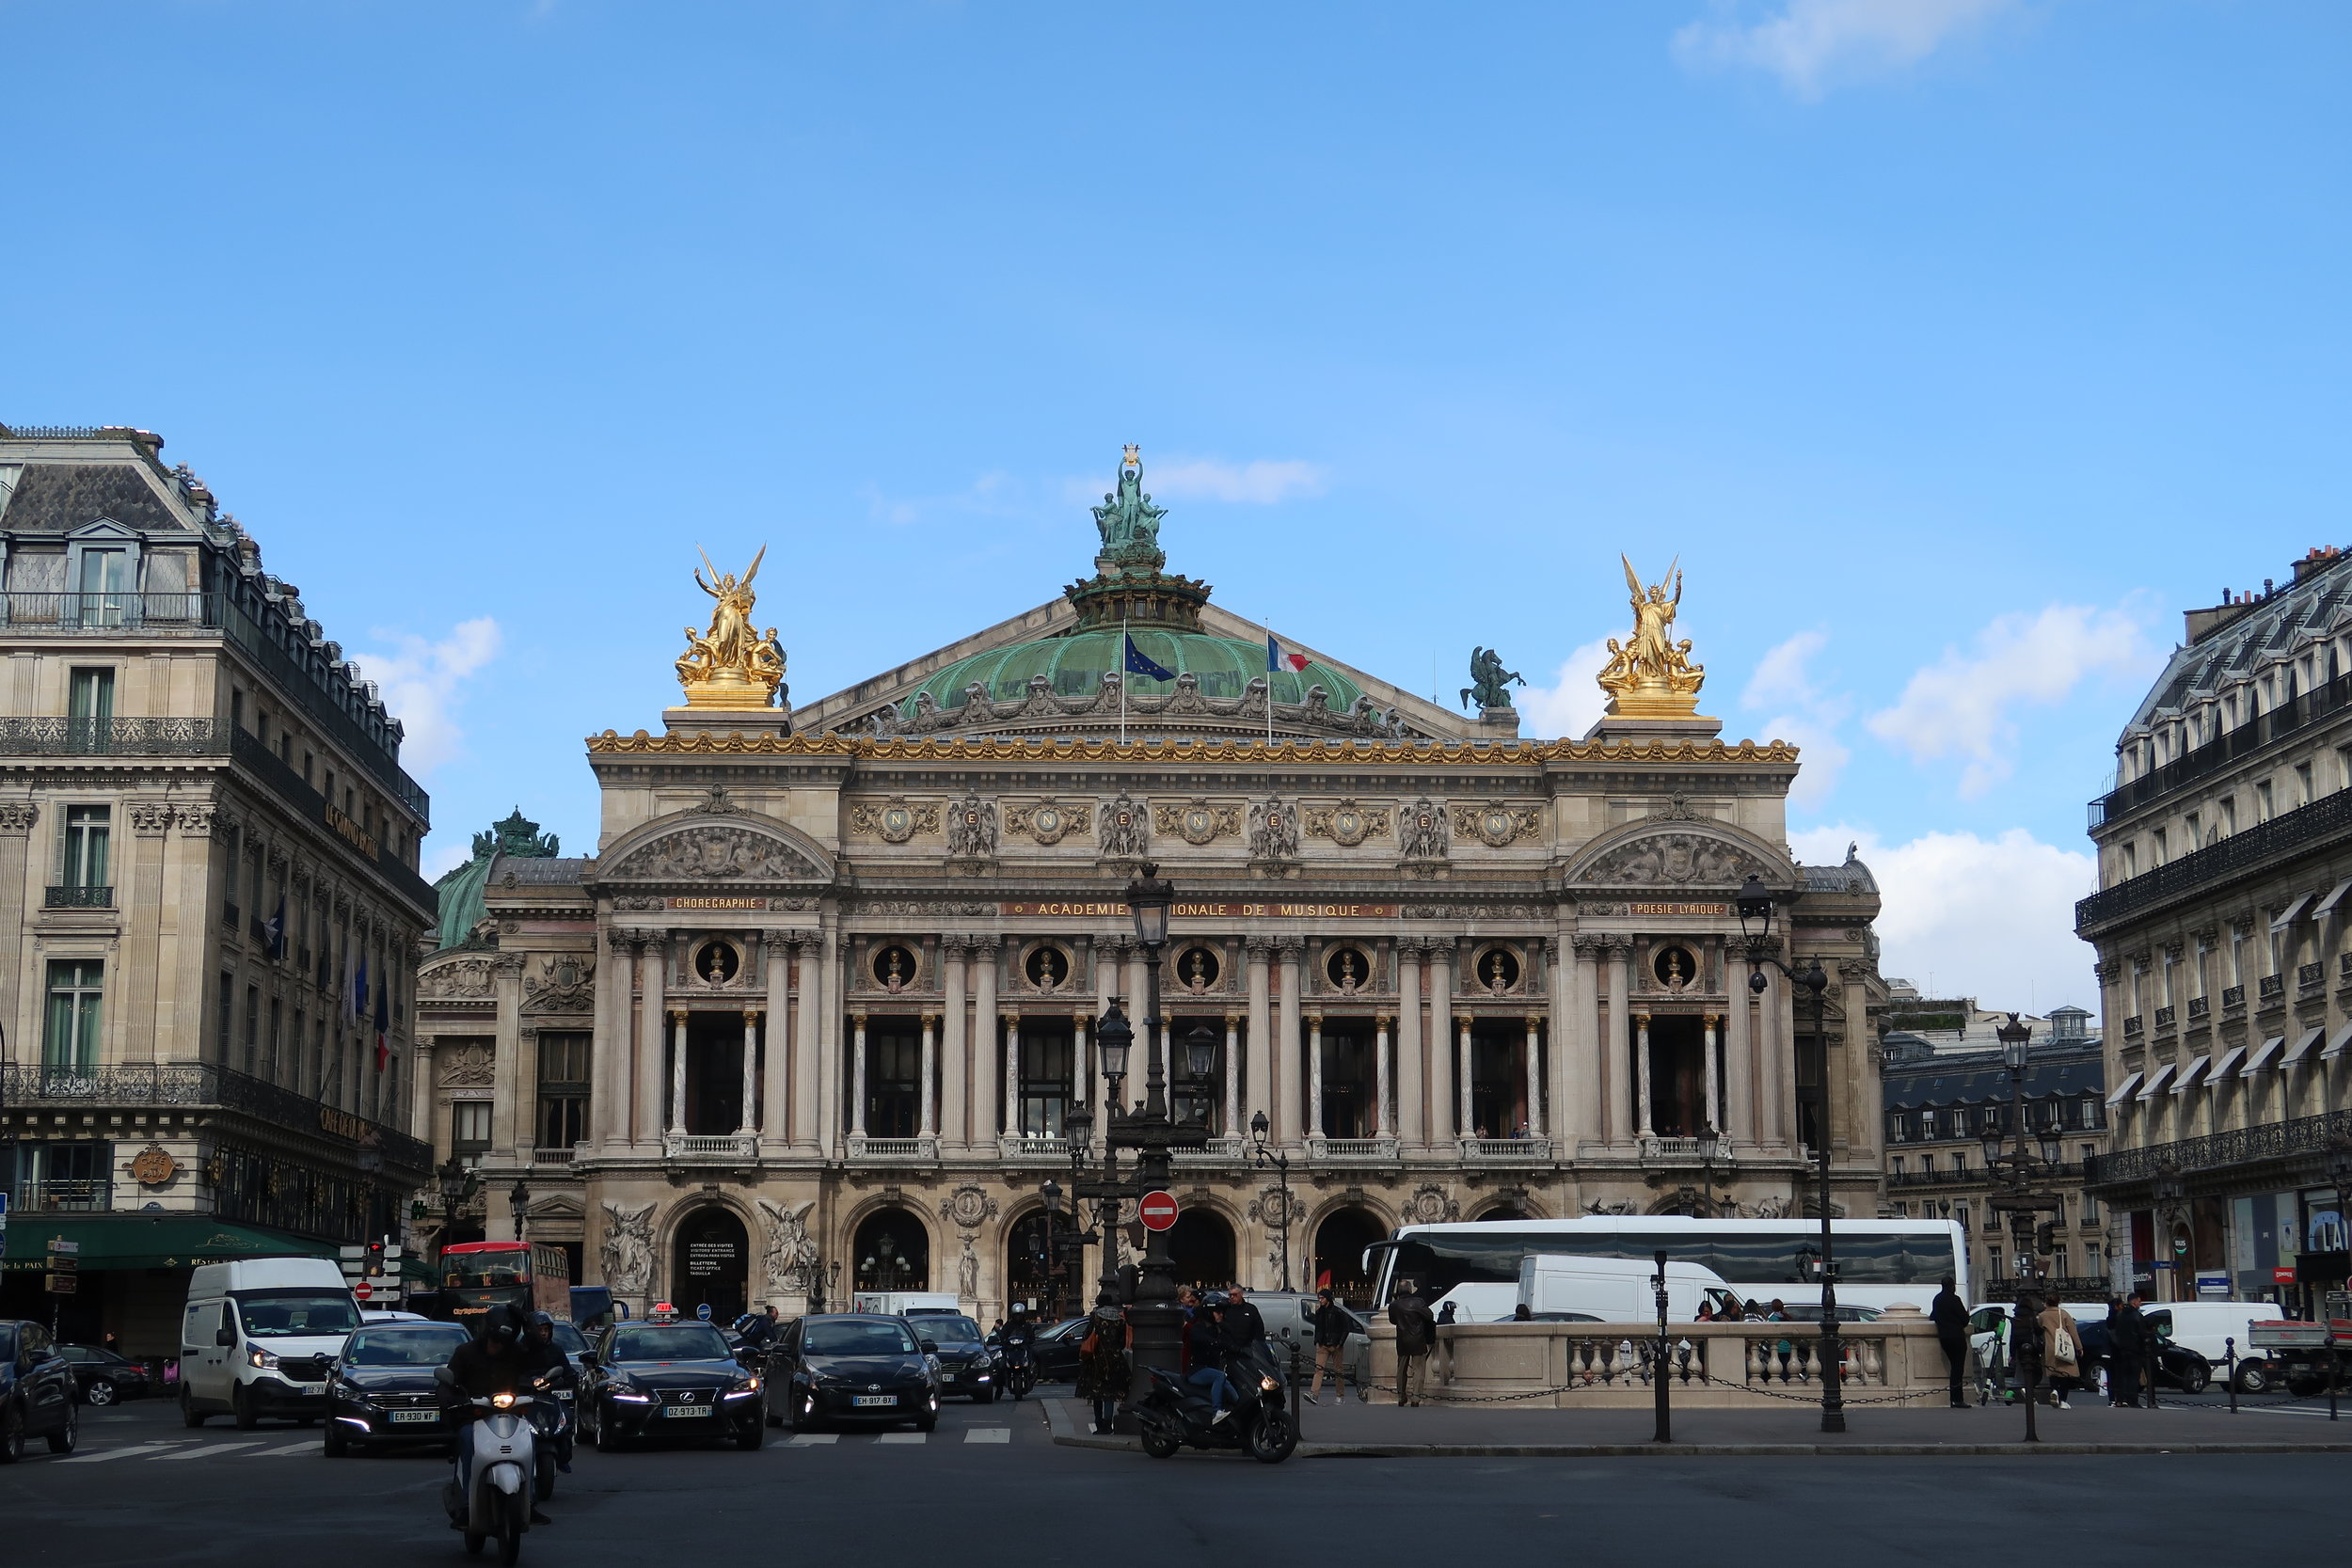 Palais Garnier (Paris Opera House) This opera house inspired the Phantom of the Opera story.